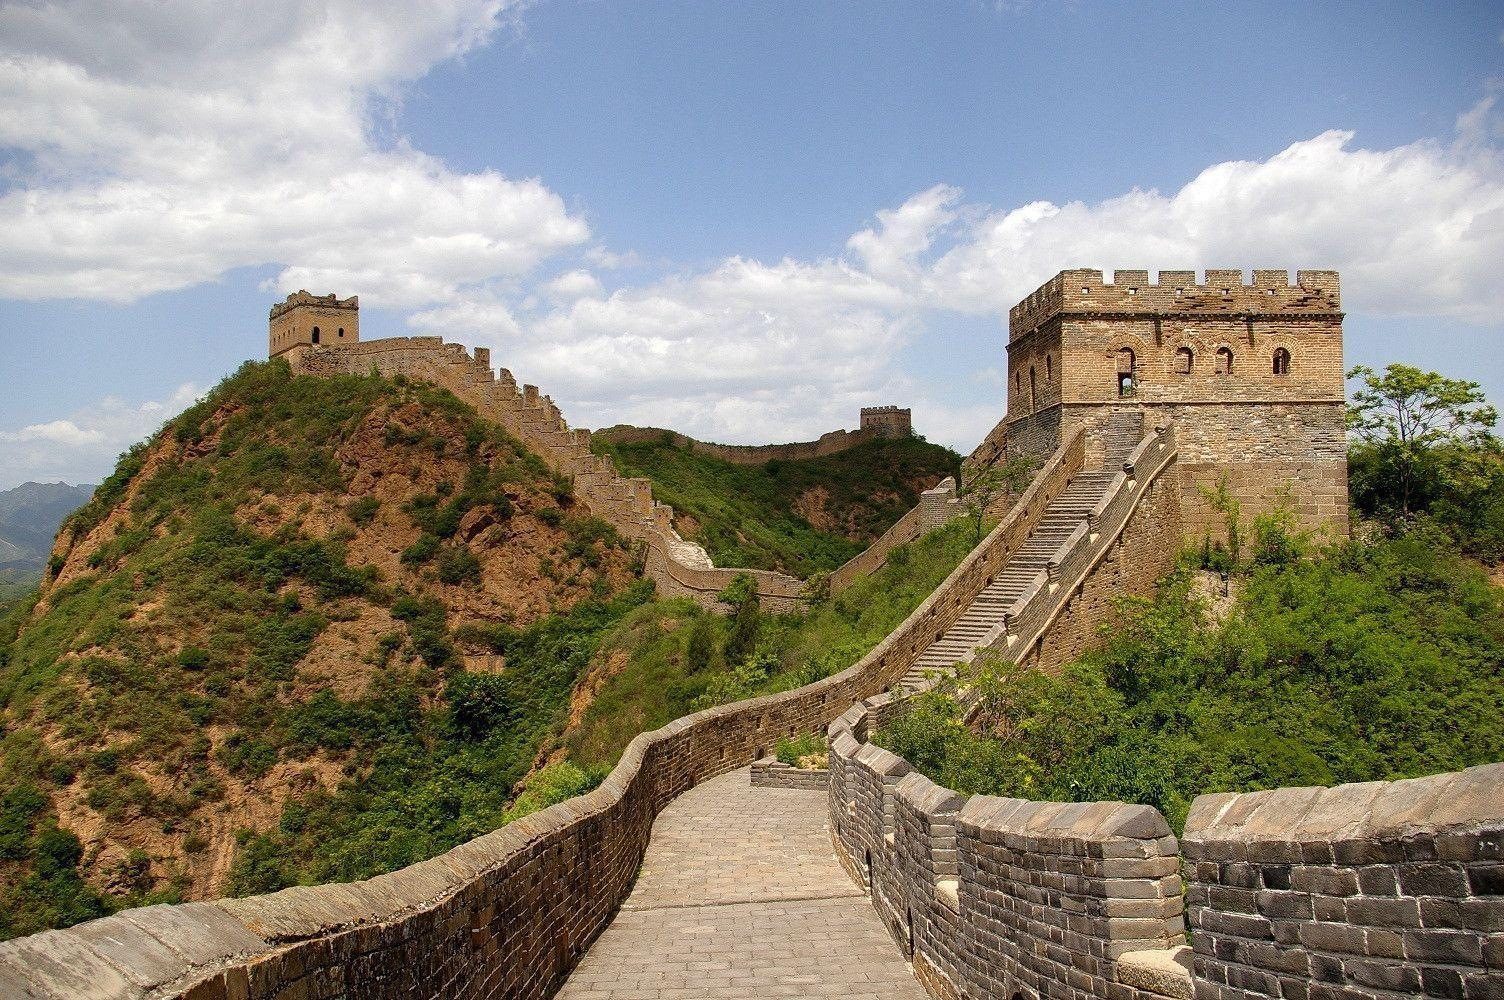 great wall of china wallpapers – Travel Around The World – Vacation